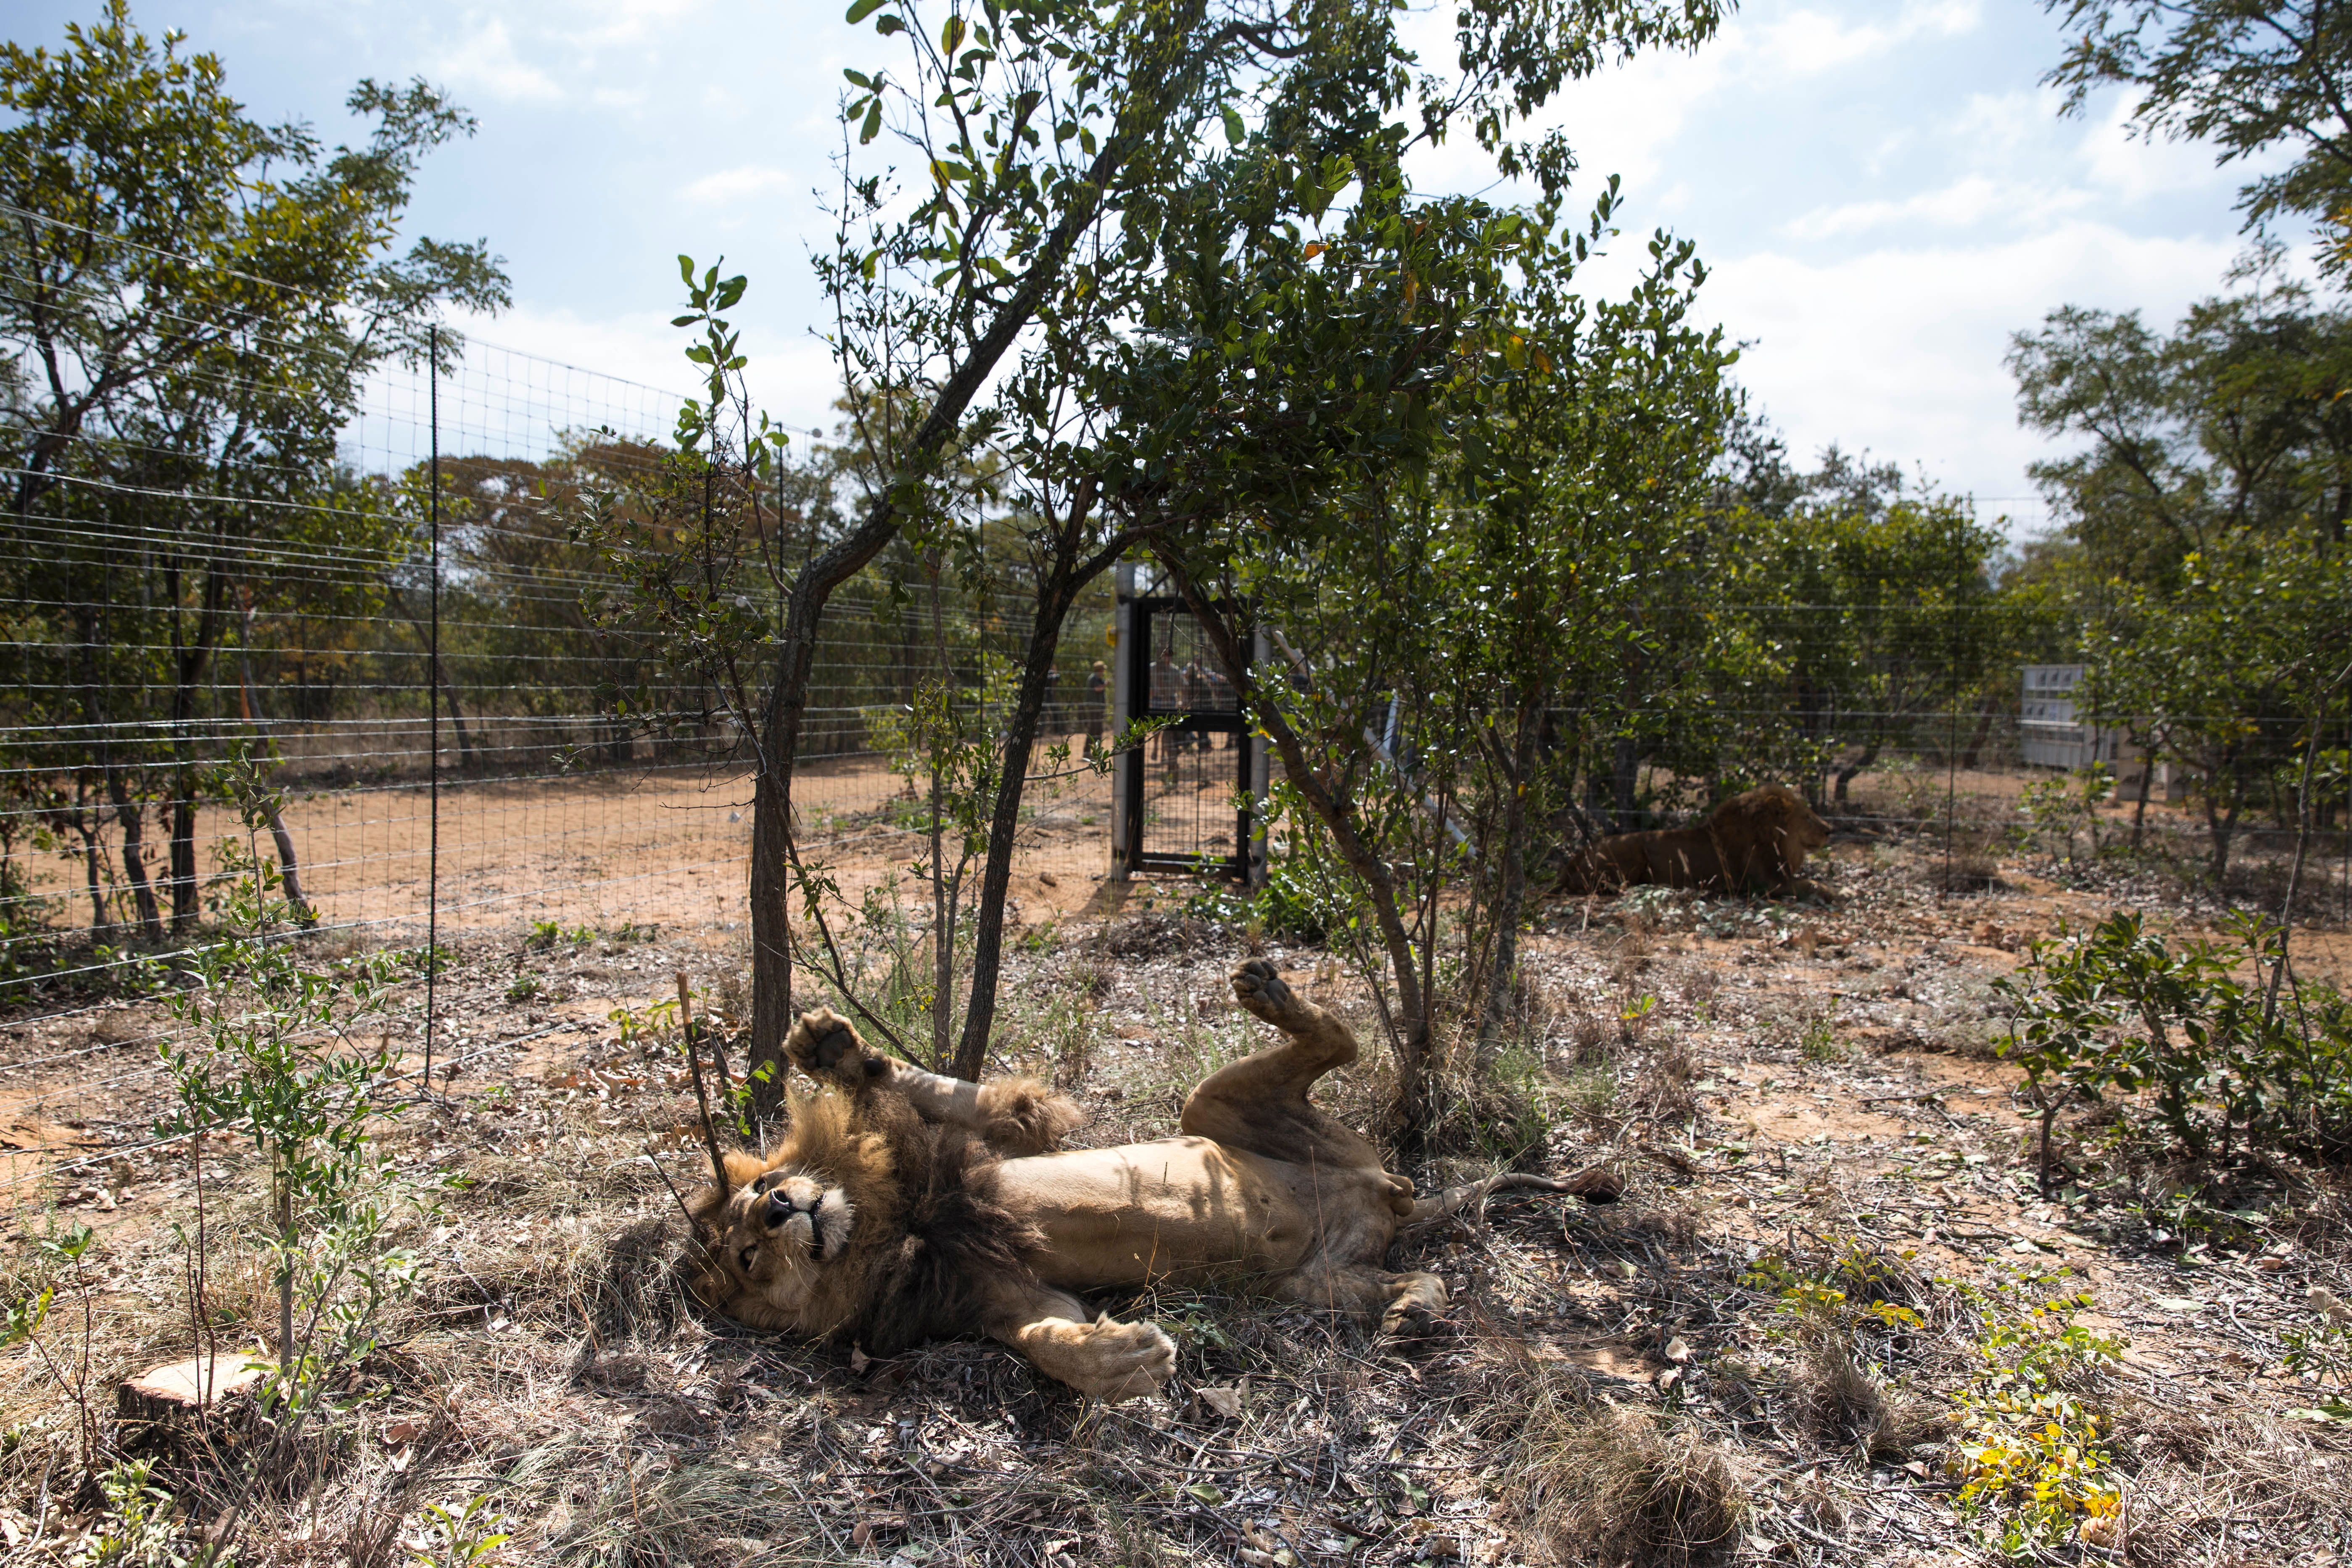 VAALWATER, SOUTH AFRICA - MAY 01:  One of the 33 lions enjoys his new enclosure at the Emoya 'Big Cat Sanctuary' on May 1, 2016 in Vaalwater, South Africa. A total of 33 former circus Lions, 22 males and 11 females from Peru and Columbia were airlifted to South Africa yesterday, before being released today to live out their lives on the private reserve in the Limpopo Province. 24 of the animals were rescued in raids on circuses operating in Peru, with the rest voluntarily surrendered by a circus in Colombia after Colombias Congress passed a bill prohibiting circuses from using wild animals. The trip has been coordinated by the animal rights group 'Animal Defenders International'. The animals have been released into small open areas with natural vegetation, something that many of the animals have never experienced before.  (Photo by Dan Kitwood/Getty Images)